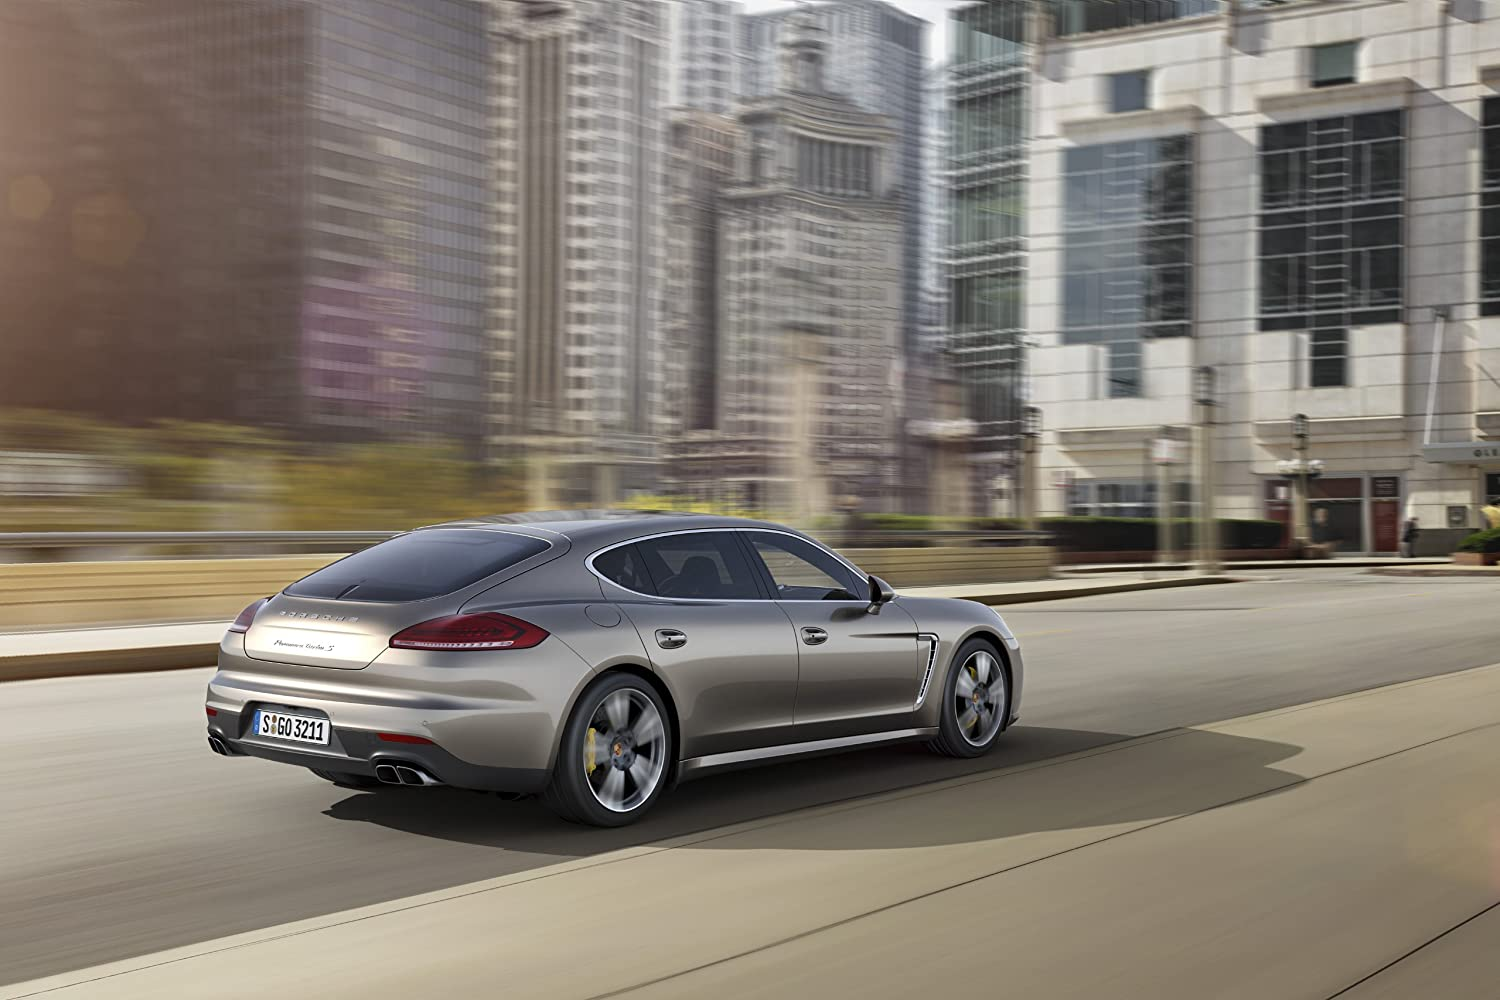 Amazon.com: Porsche Panamera Turbo S Executive (2014) Car Art Poster Print on 10 mil Archival Satin Paper Silver Rear Side Motion View 24